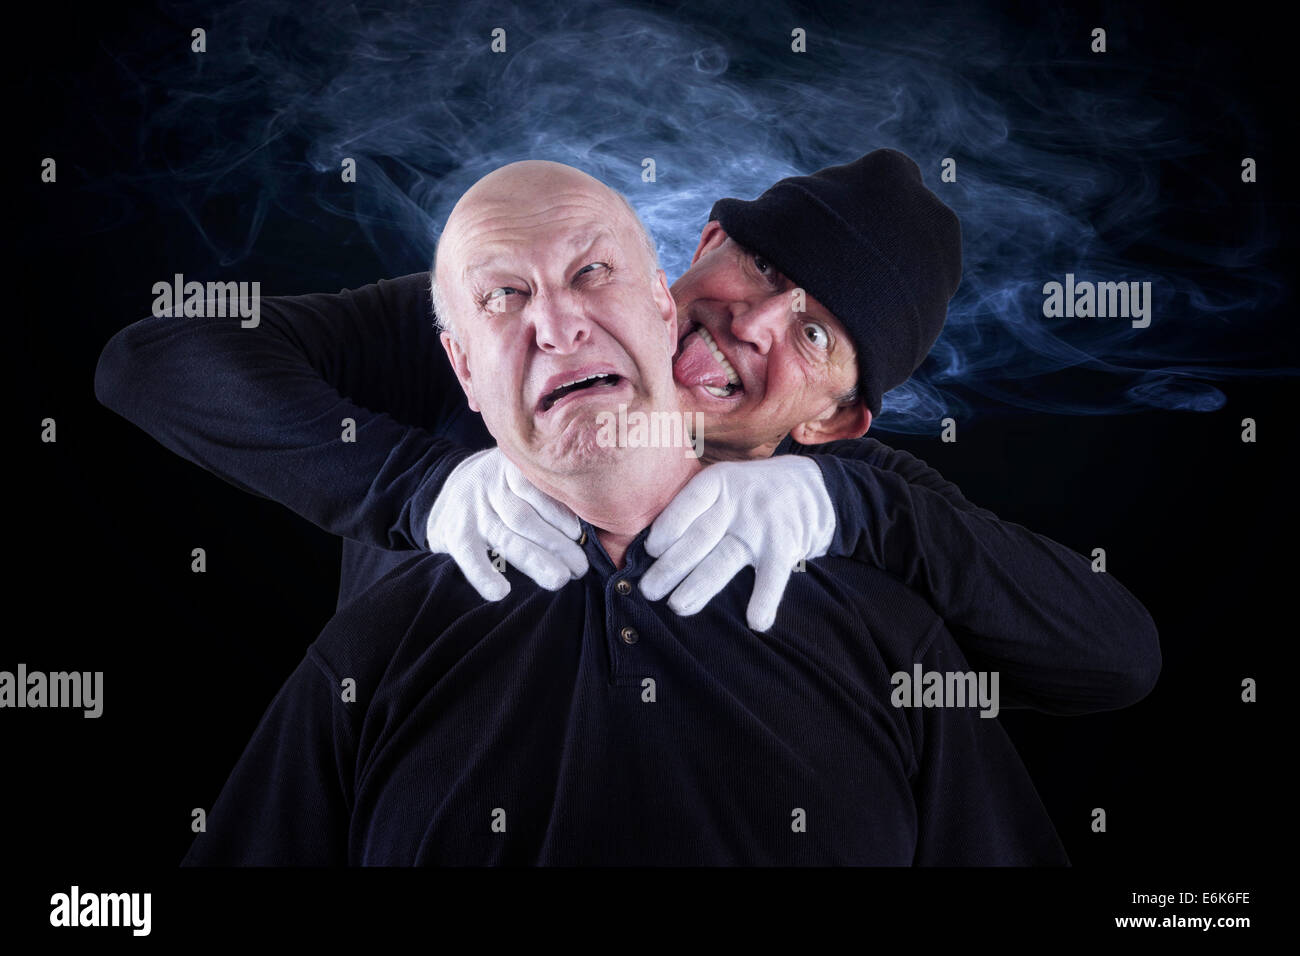 Senior citizen, 62 years, choking his partner, 55 years, after a dispute - Stock Image